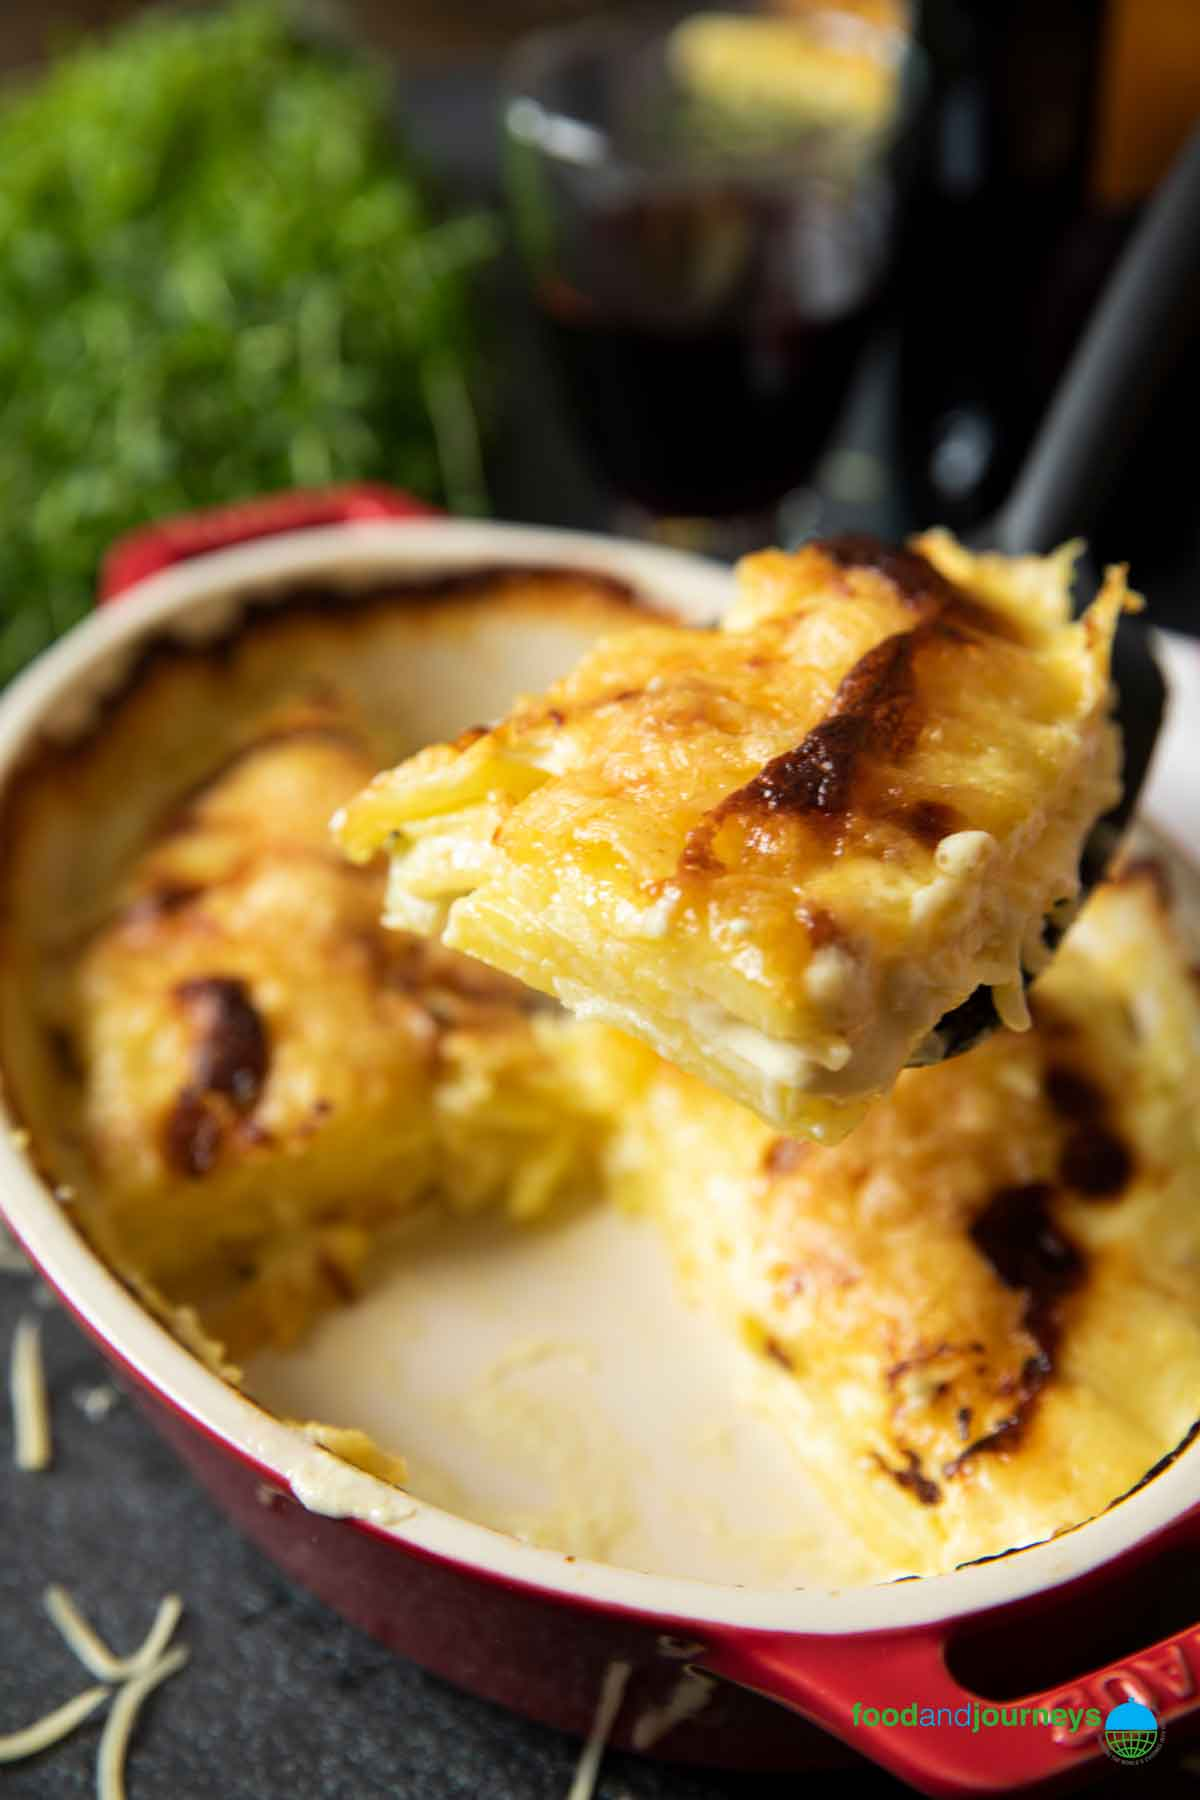 A shot of a serving of German potato gratin, about to be placed on a plate.